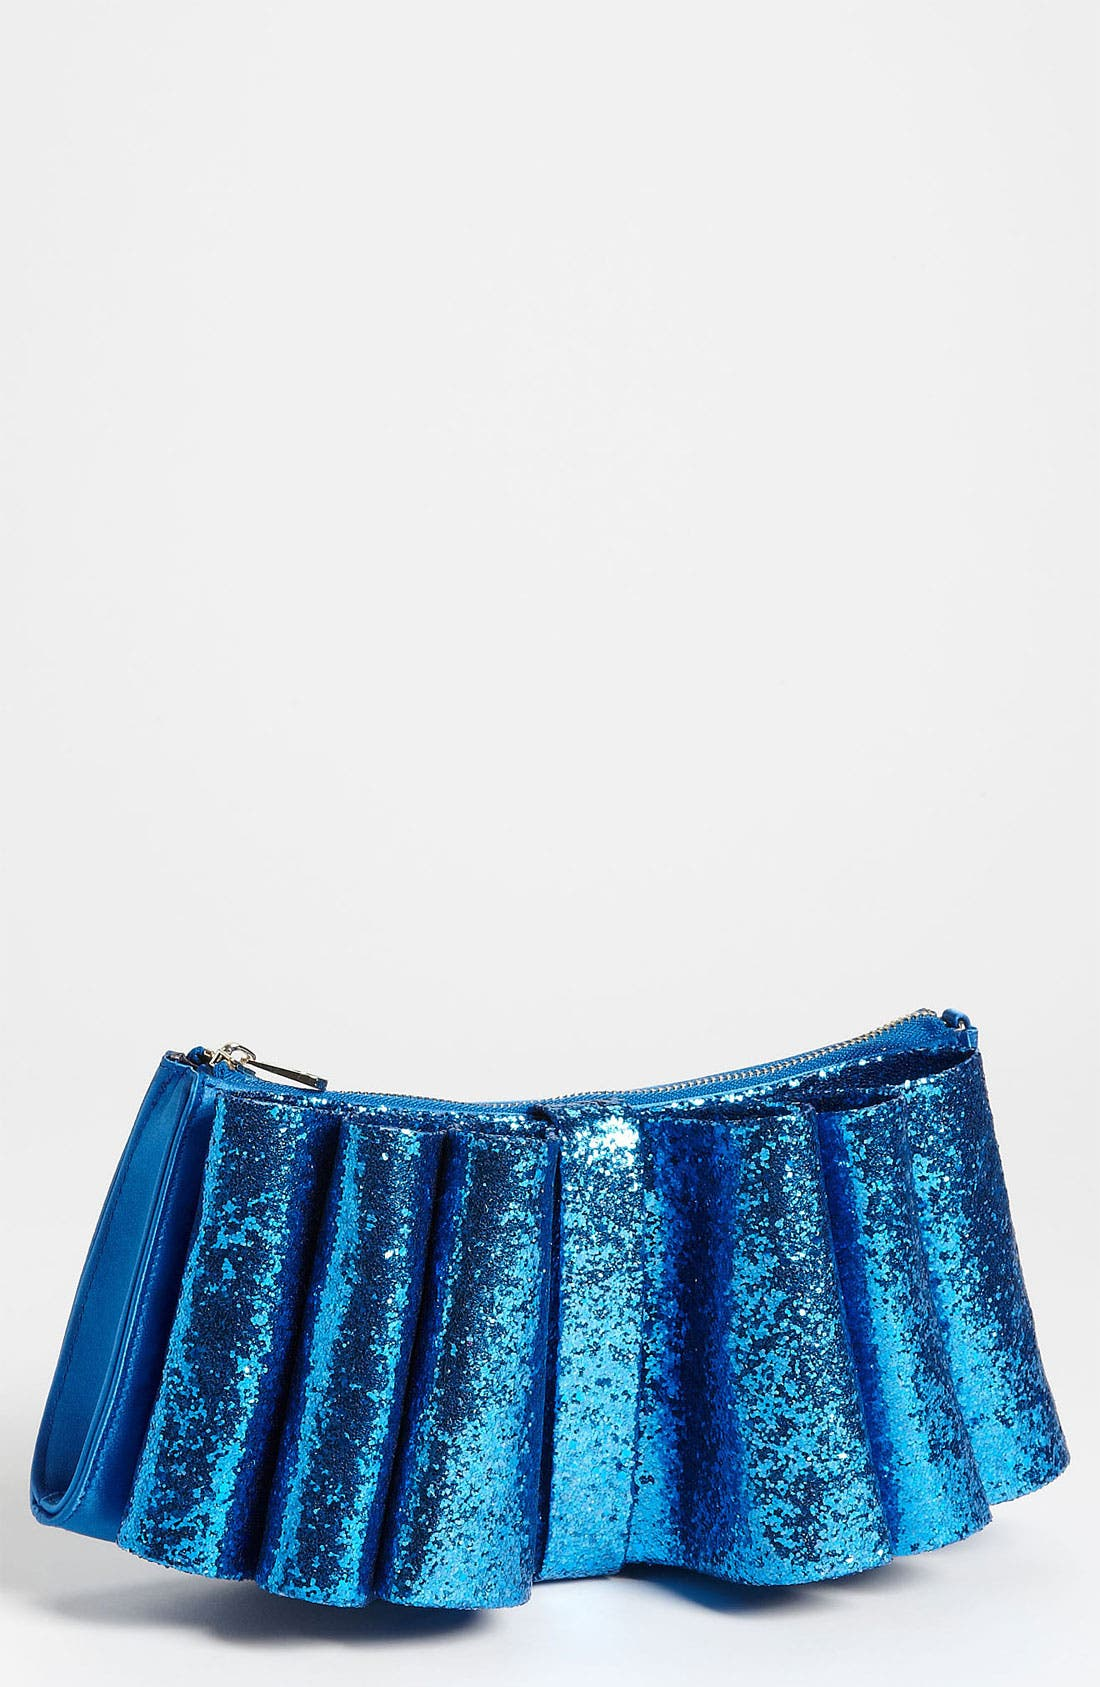 Main Image - Ted Baker London 'Bowden' Clutch